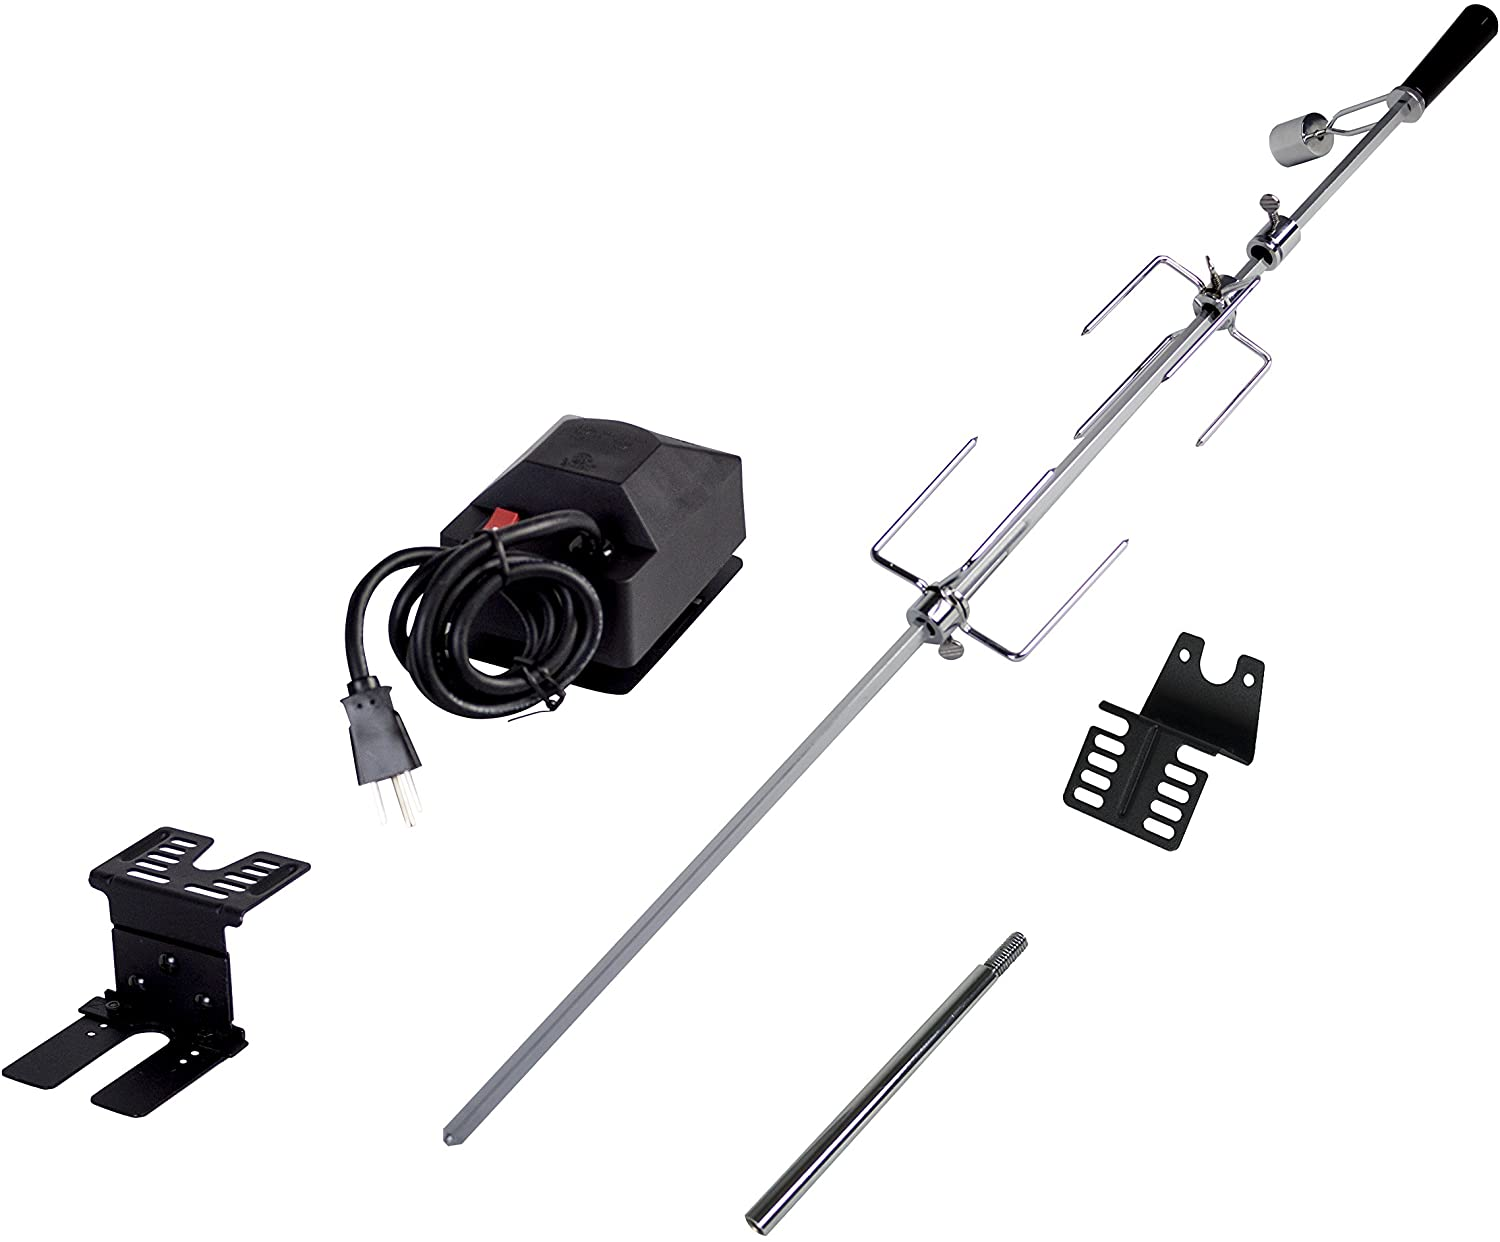 Dyna-Glo Universal Deluxe Rotisserie Kit for Grills : Garden & Outdoor